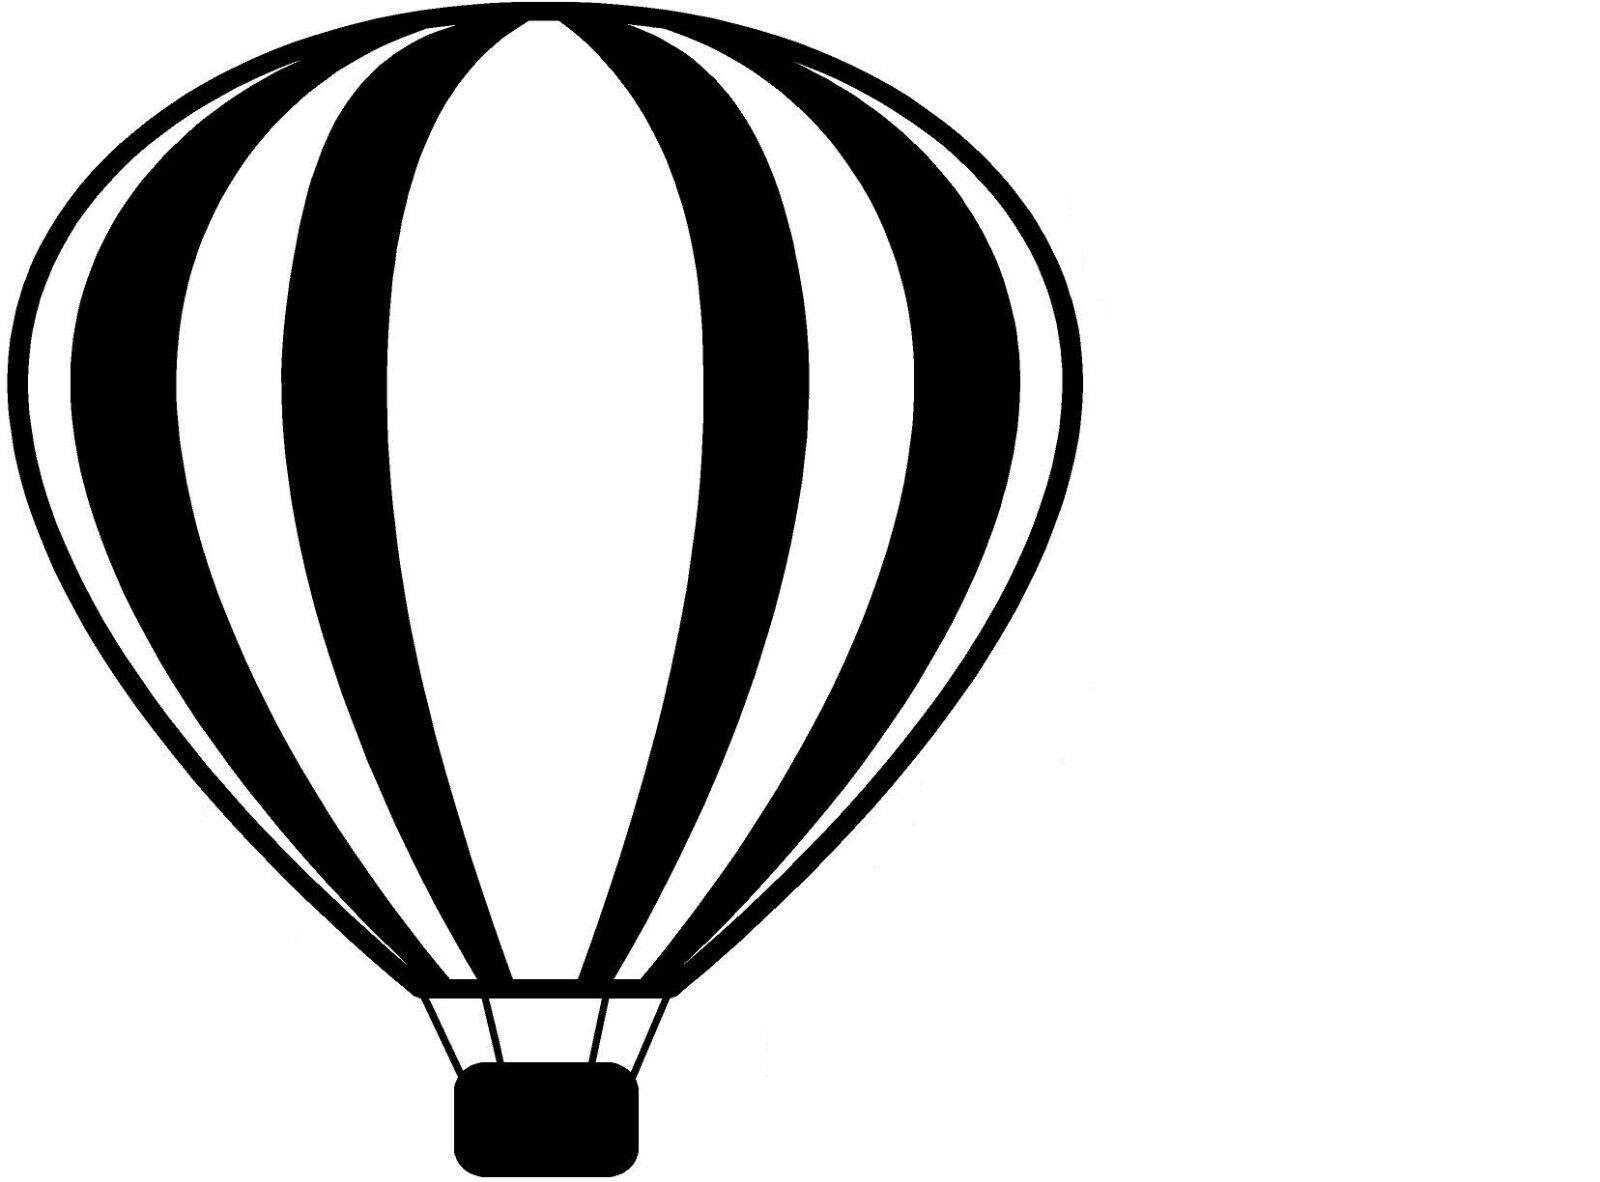 Hot Air Balloon Car Auto Window Vinyl Decal Sticker 10151